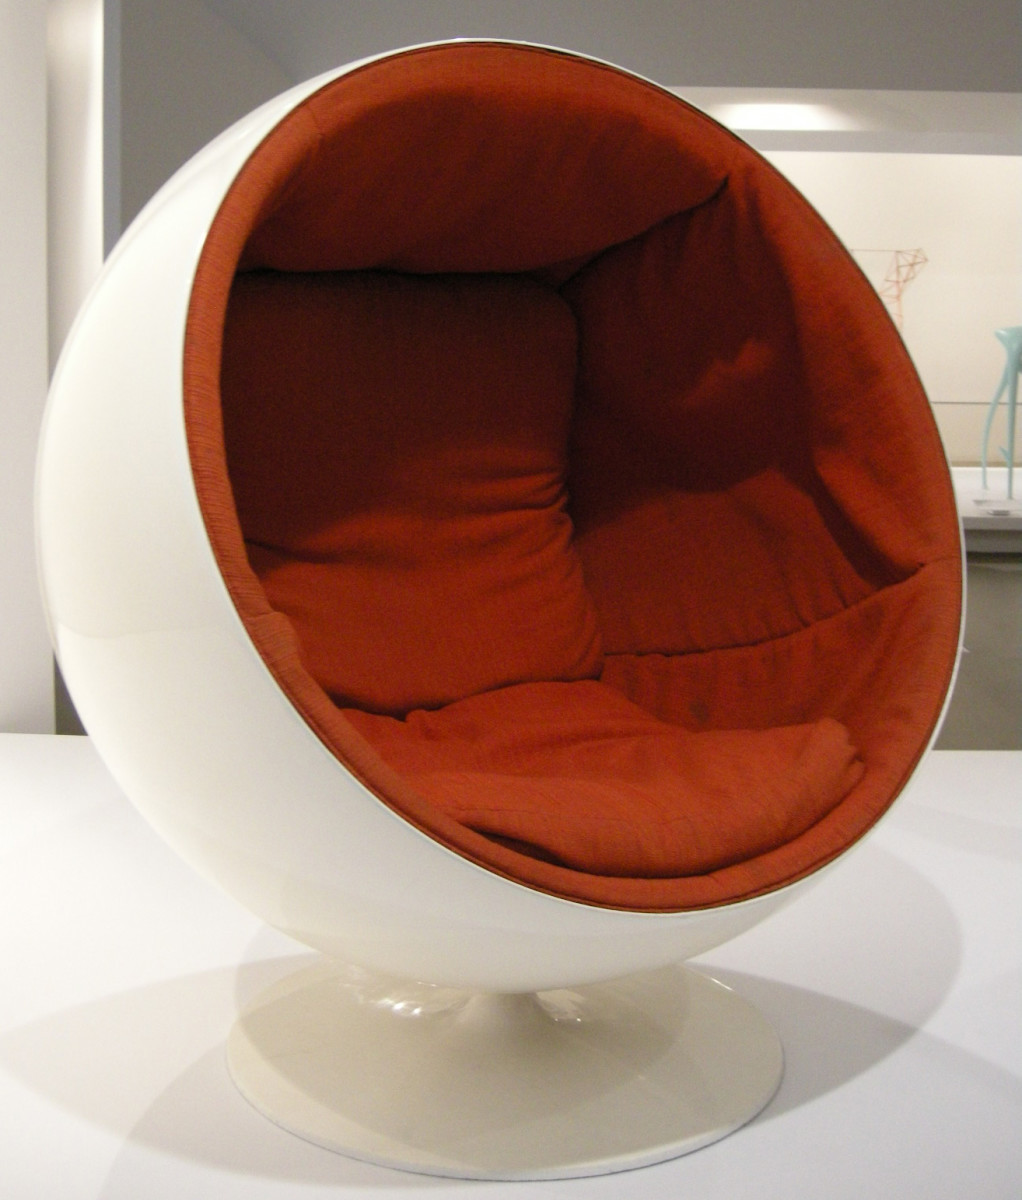 Ball Chair, by Eero Aarnio, 1963